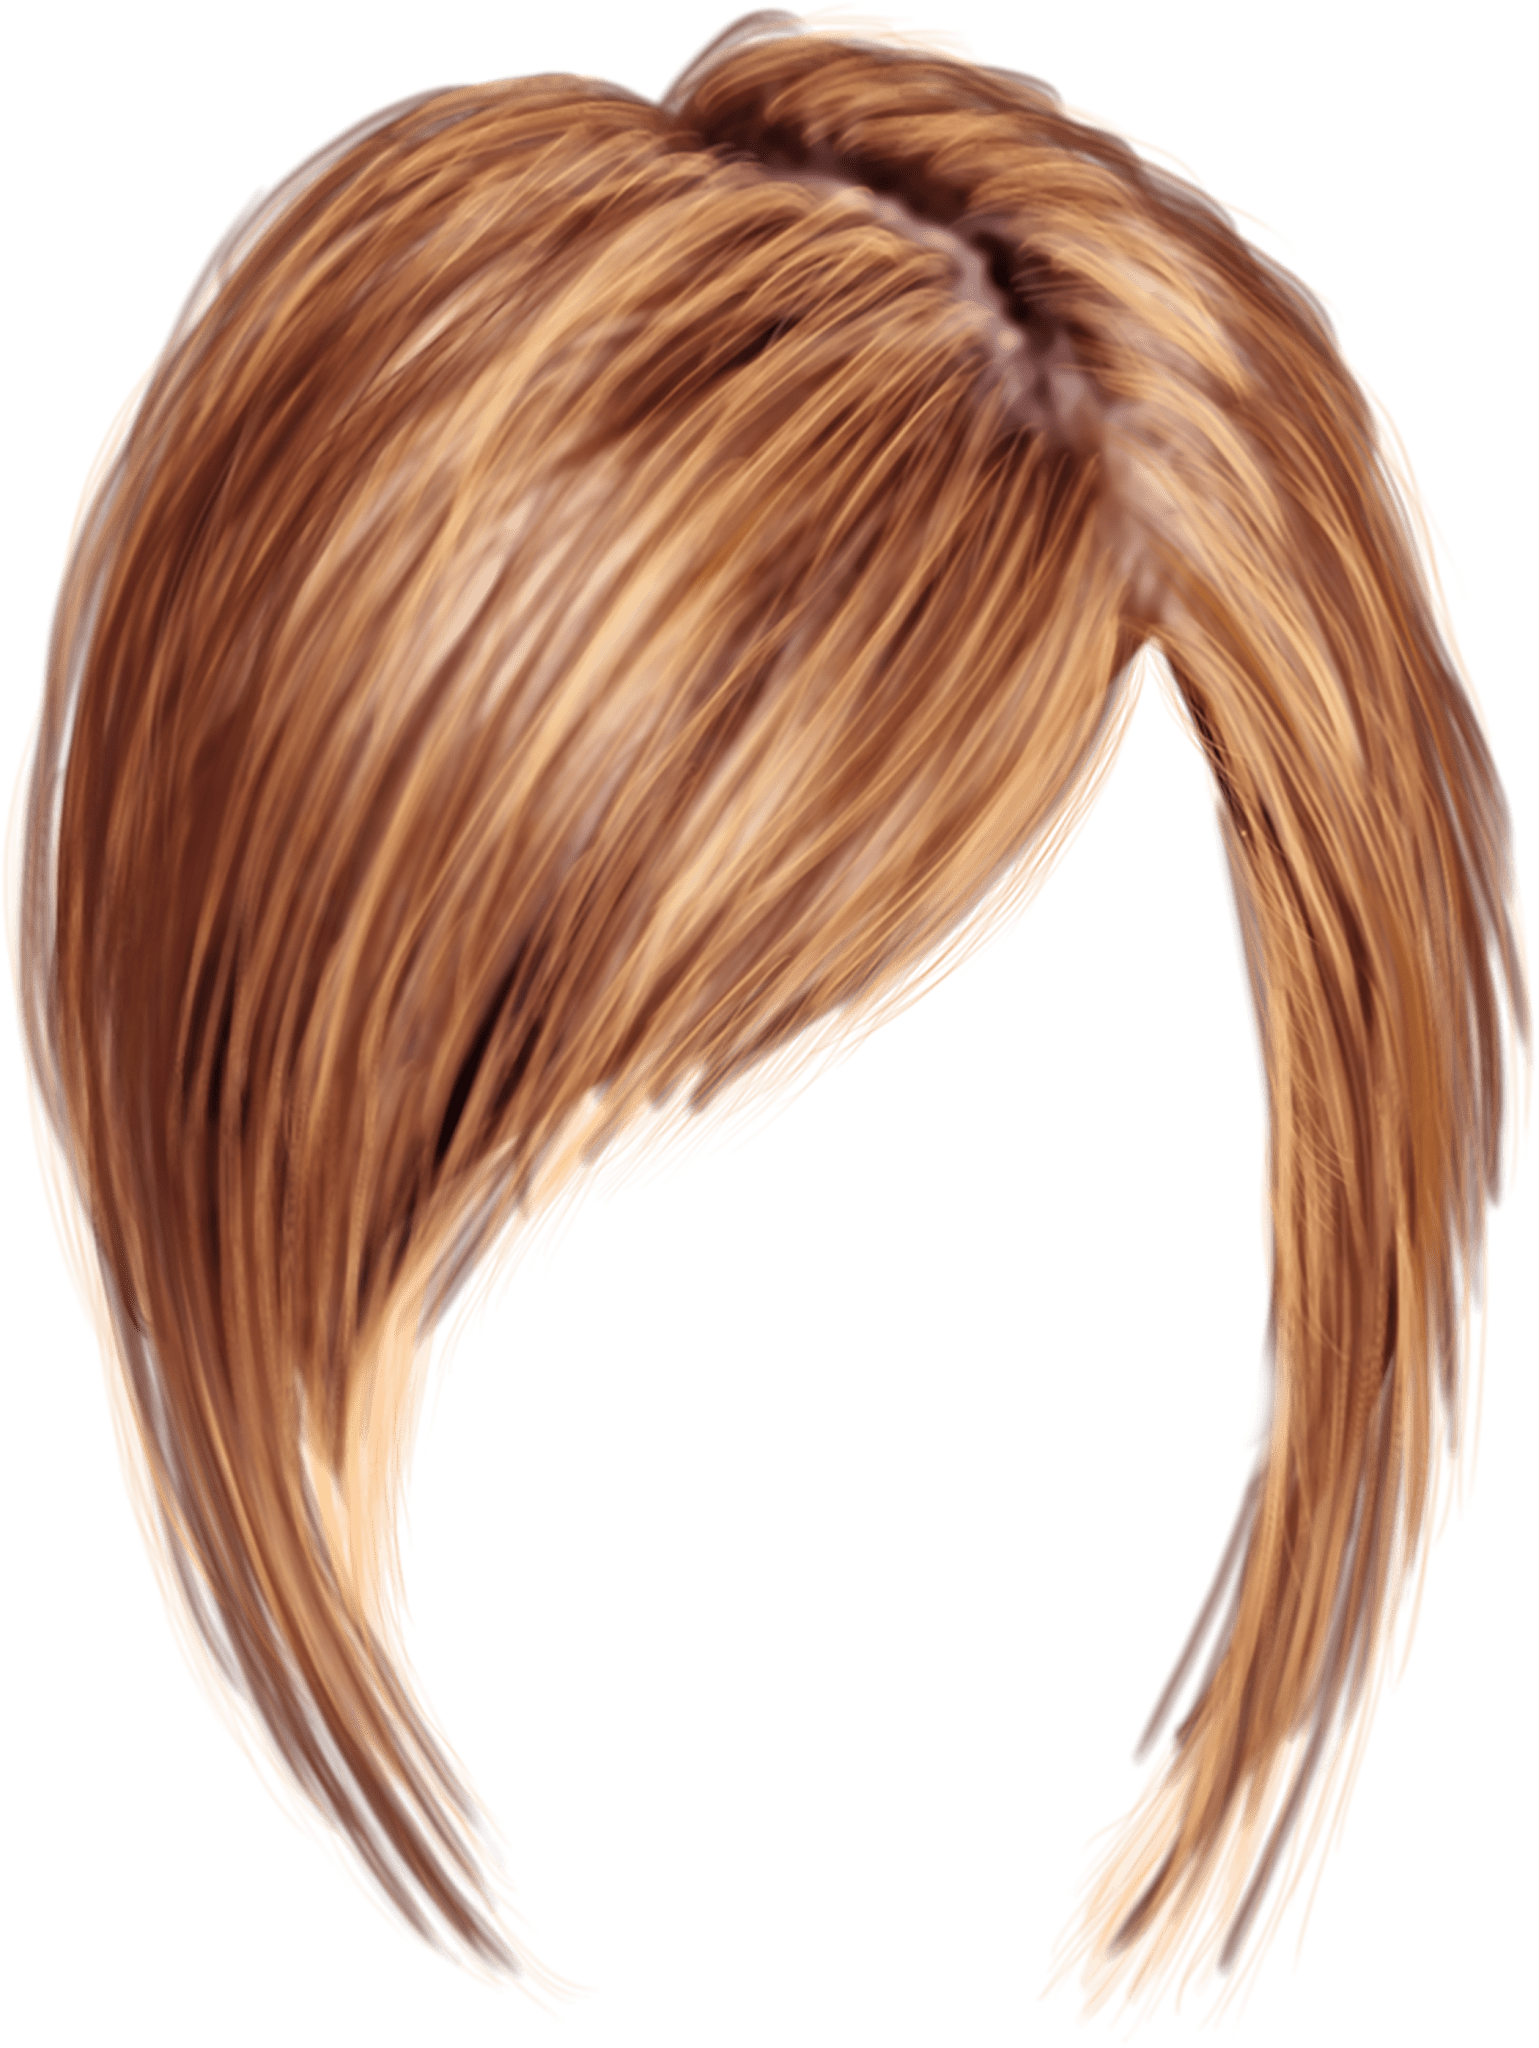 Short Women Hair Transparent Png Stickpng